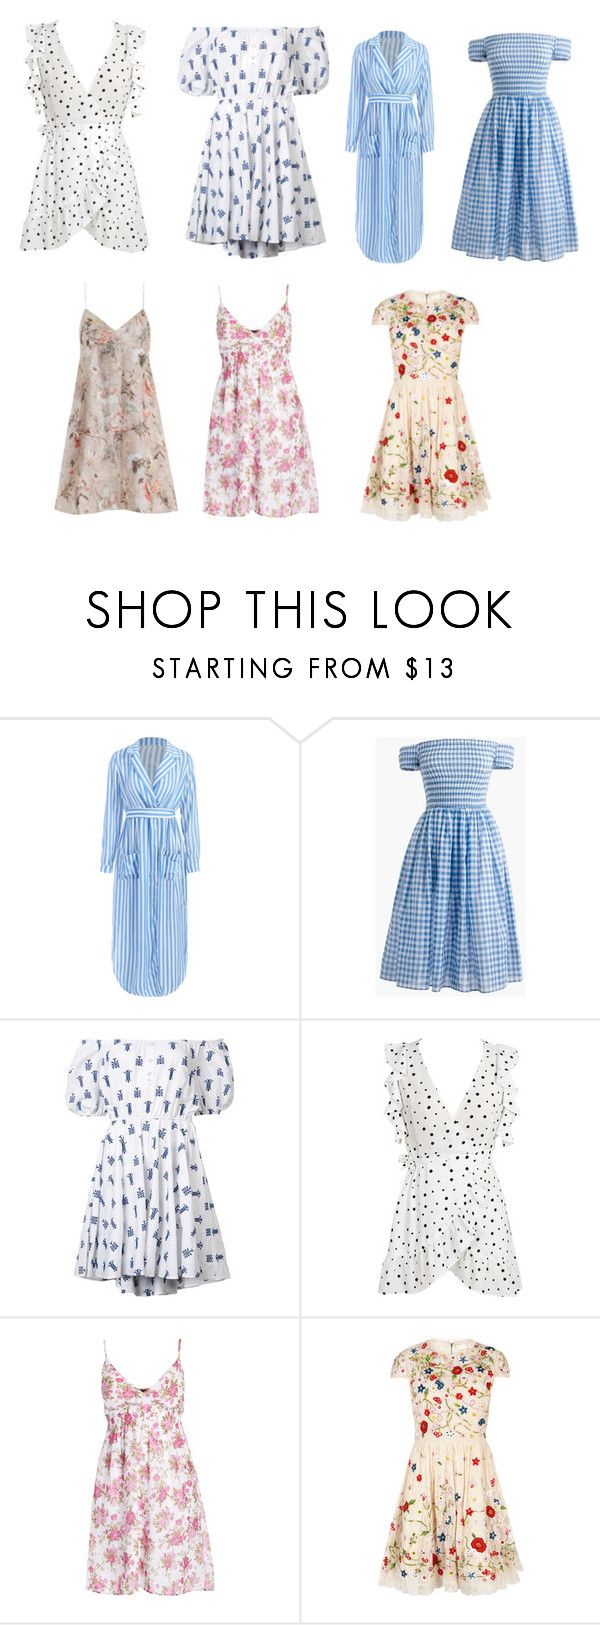 """""""Конец ЛЕТА"""" by princessa-383 ❤ liked on Polyvore featuring J.Crew, Caroline Constas, WithChic, Alice + Olivia, Zimmermann and plus size dresses"""